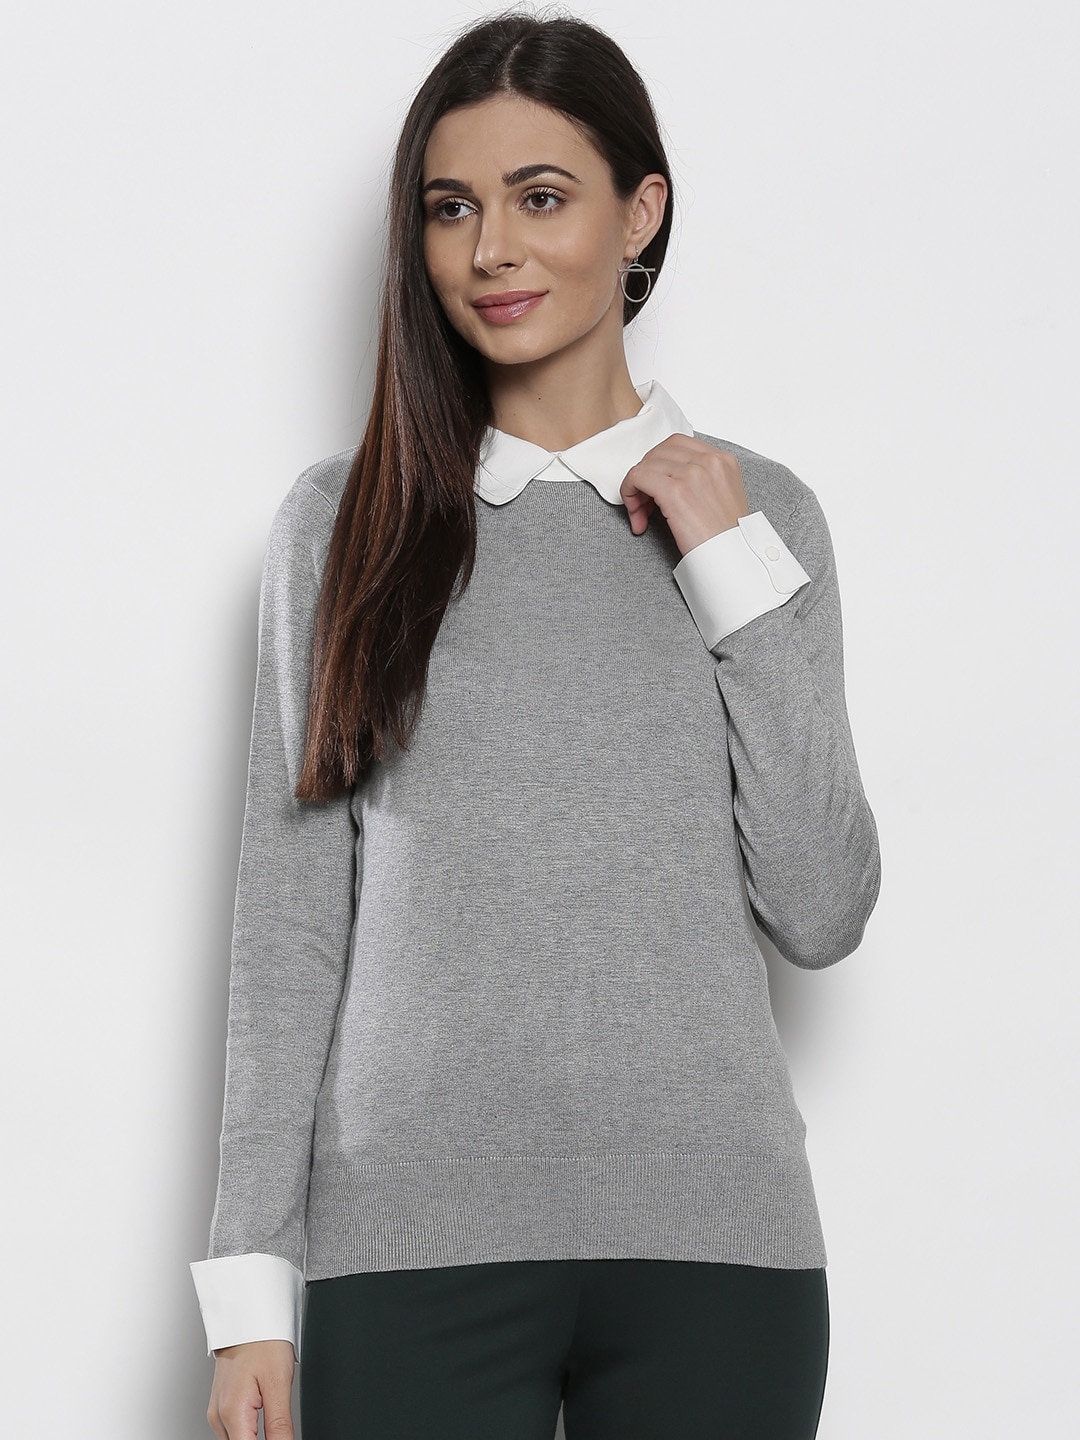 ed750a1bcc5 Dorothy Perkins - Buy Dorothy Perkins collection for women online - Myntra